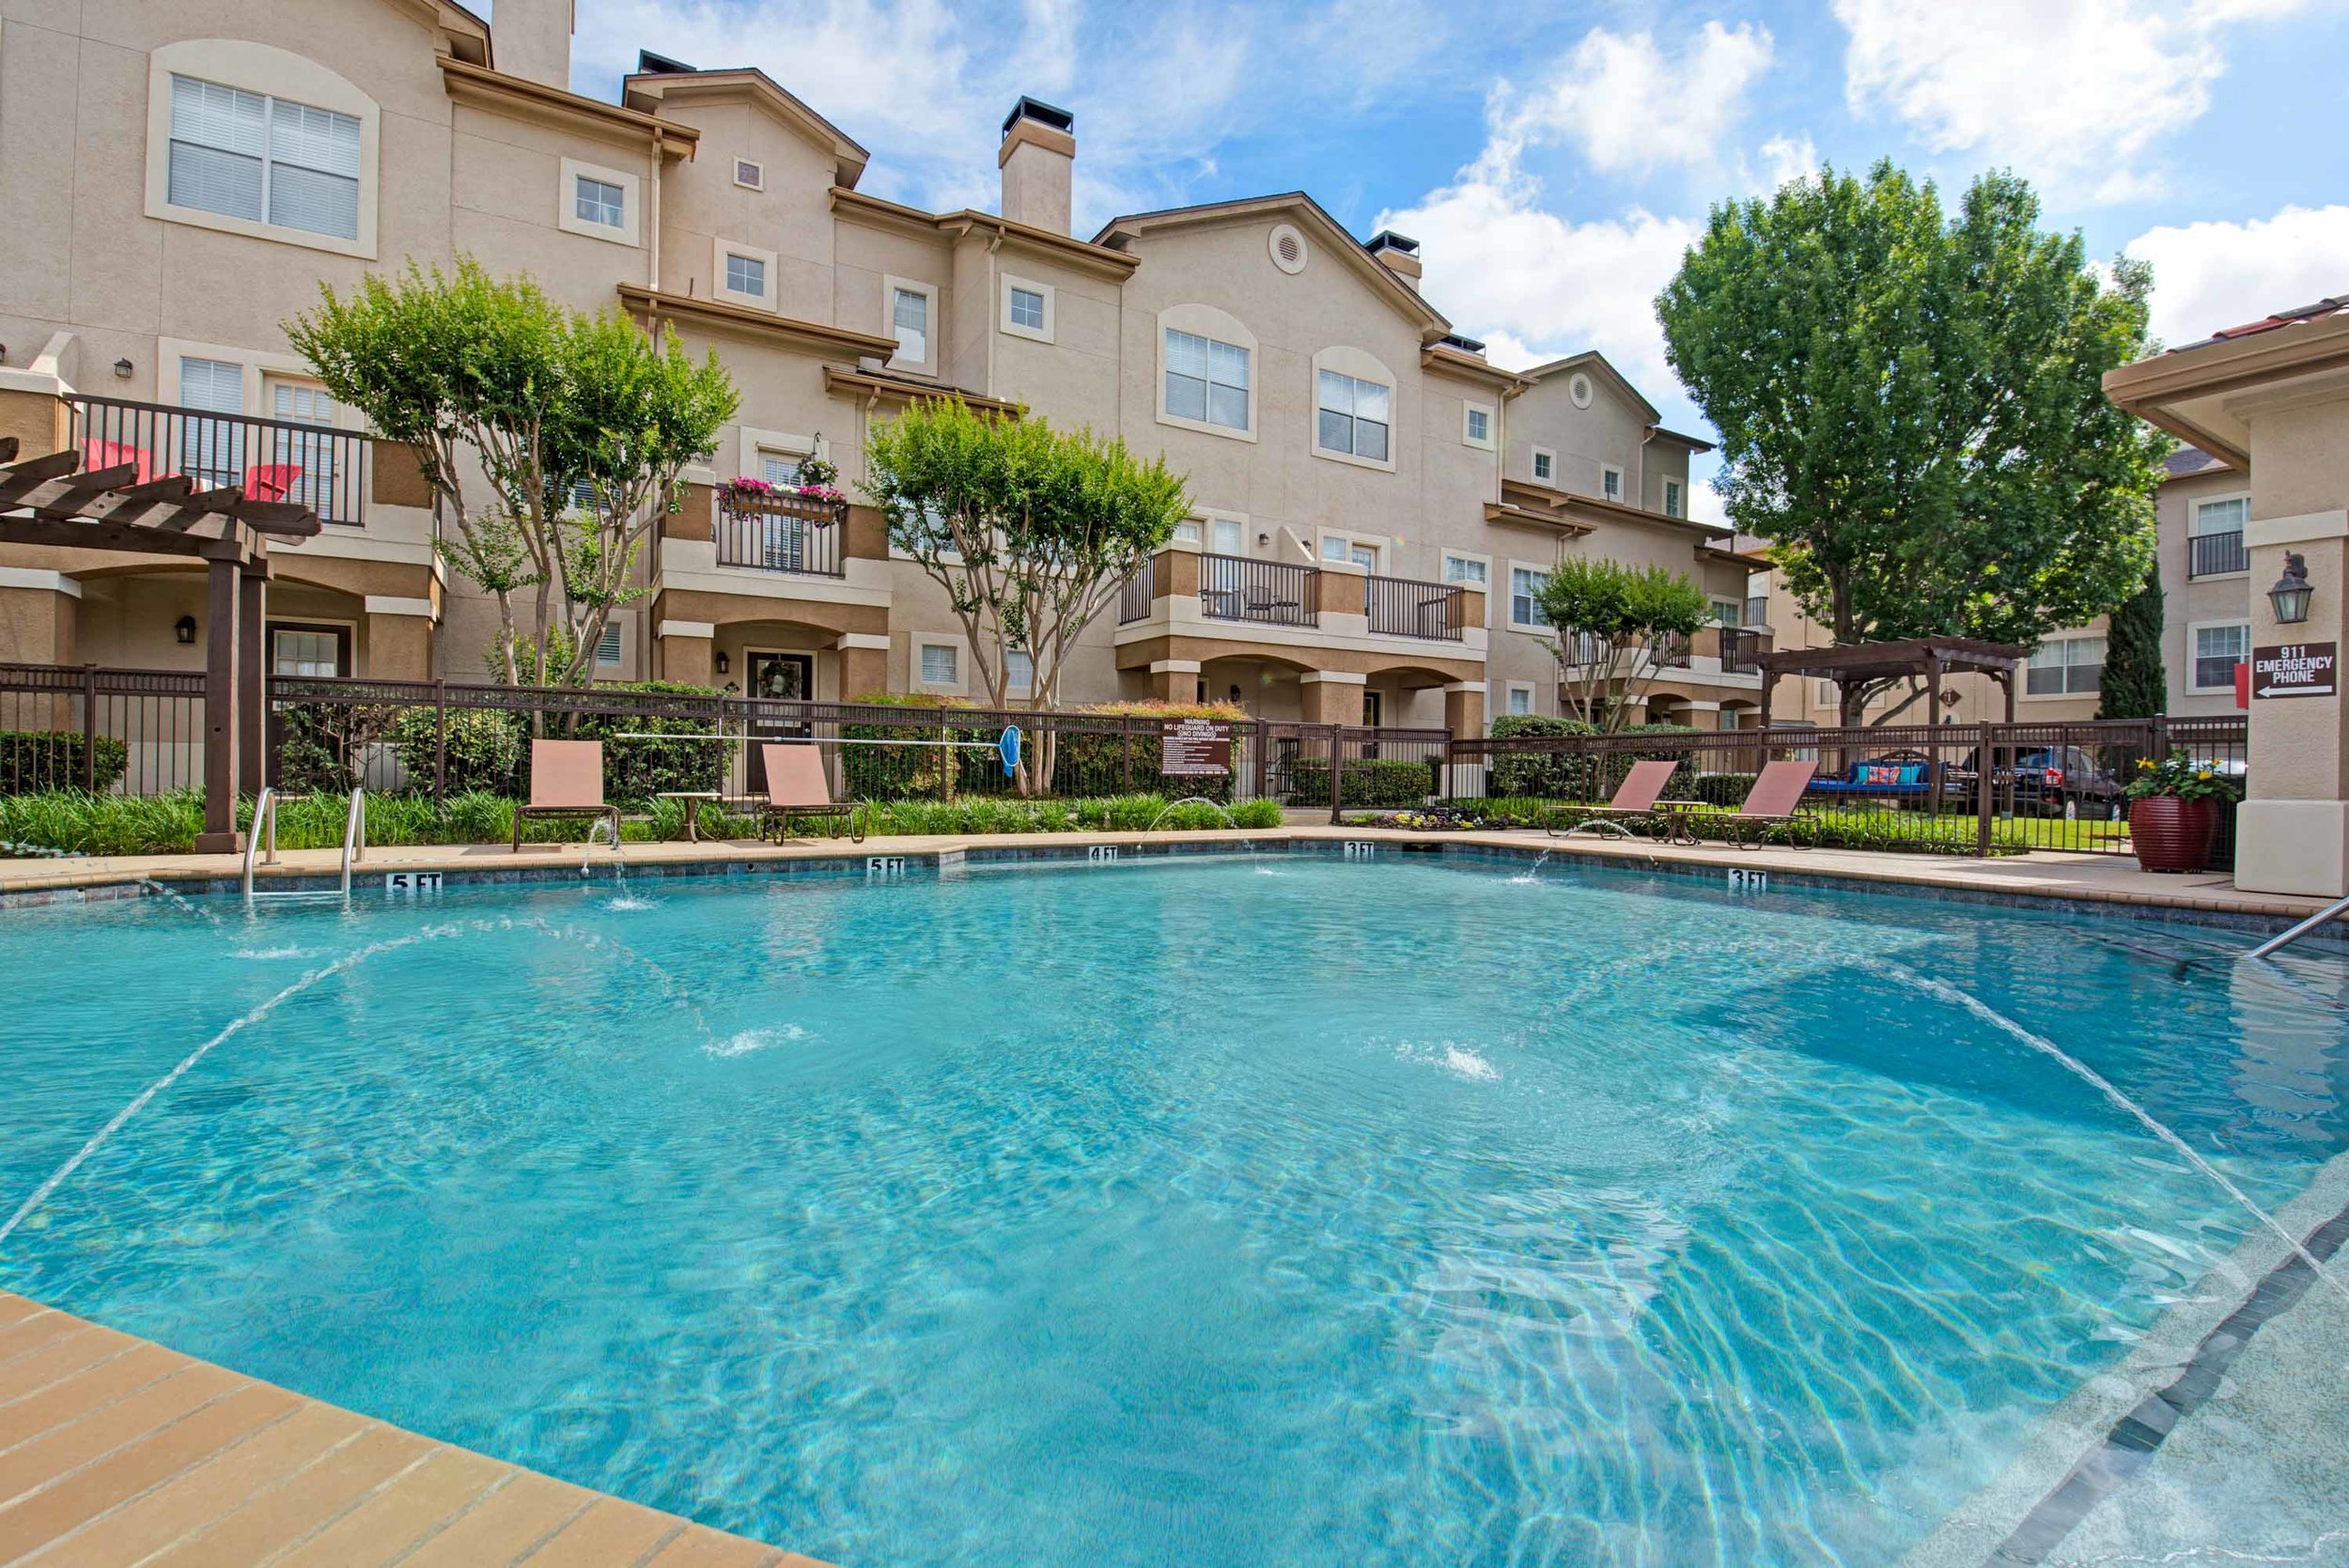 Monticello Oaks Townhomes in Fort Worth, TX